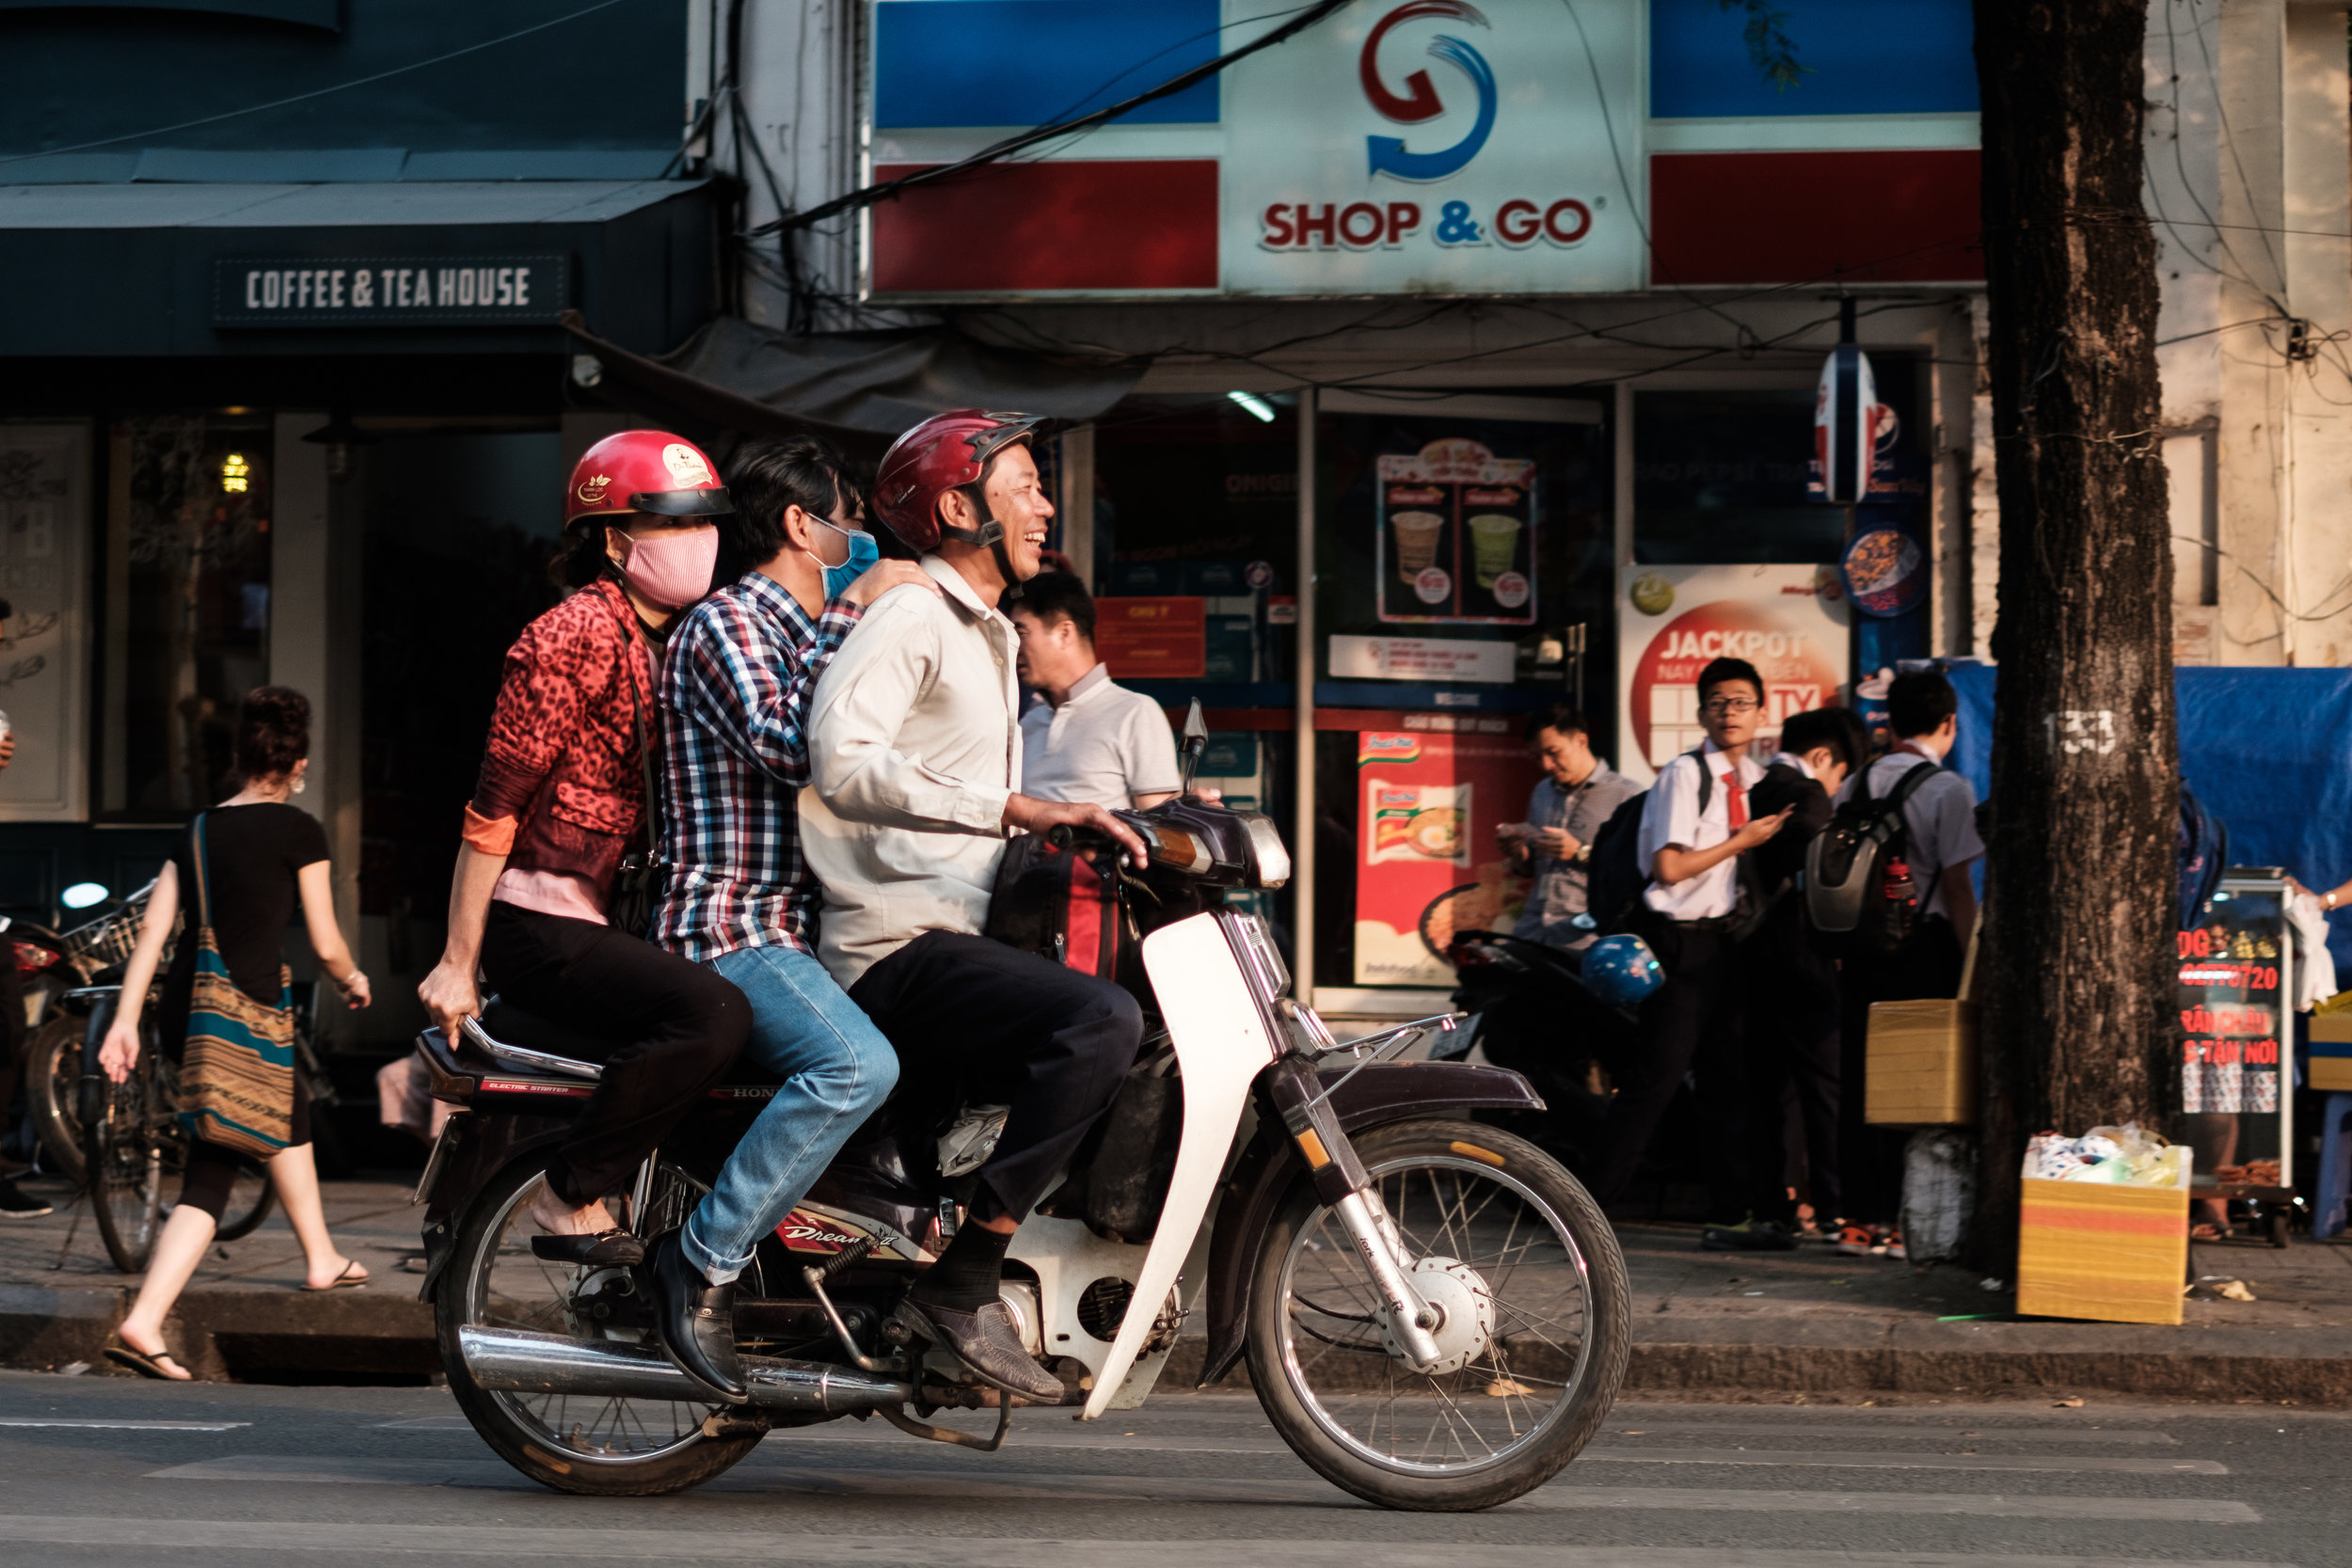 Three people on a scooter ride by a shop & go store in Ho Chi Minh City, Vietnam